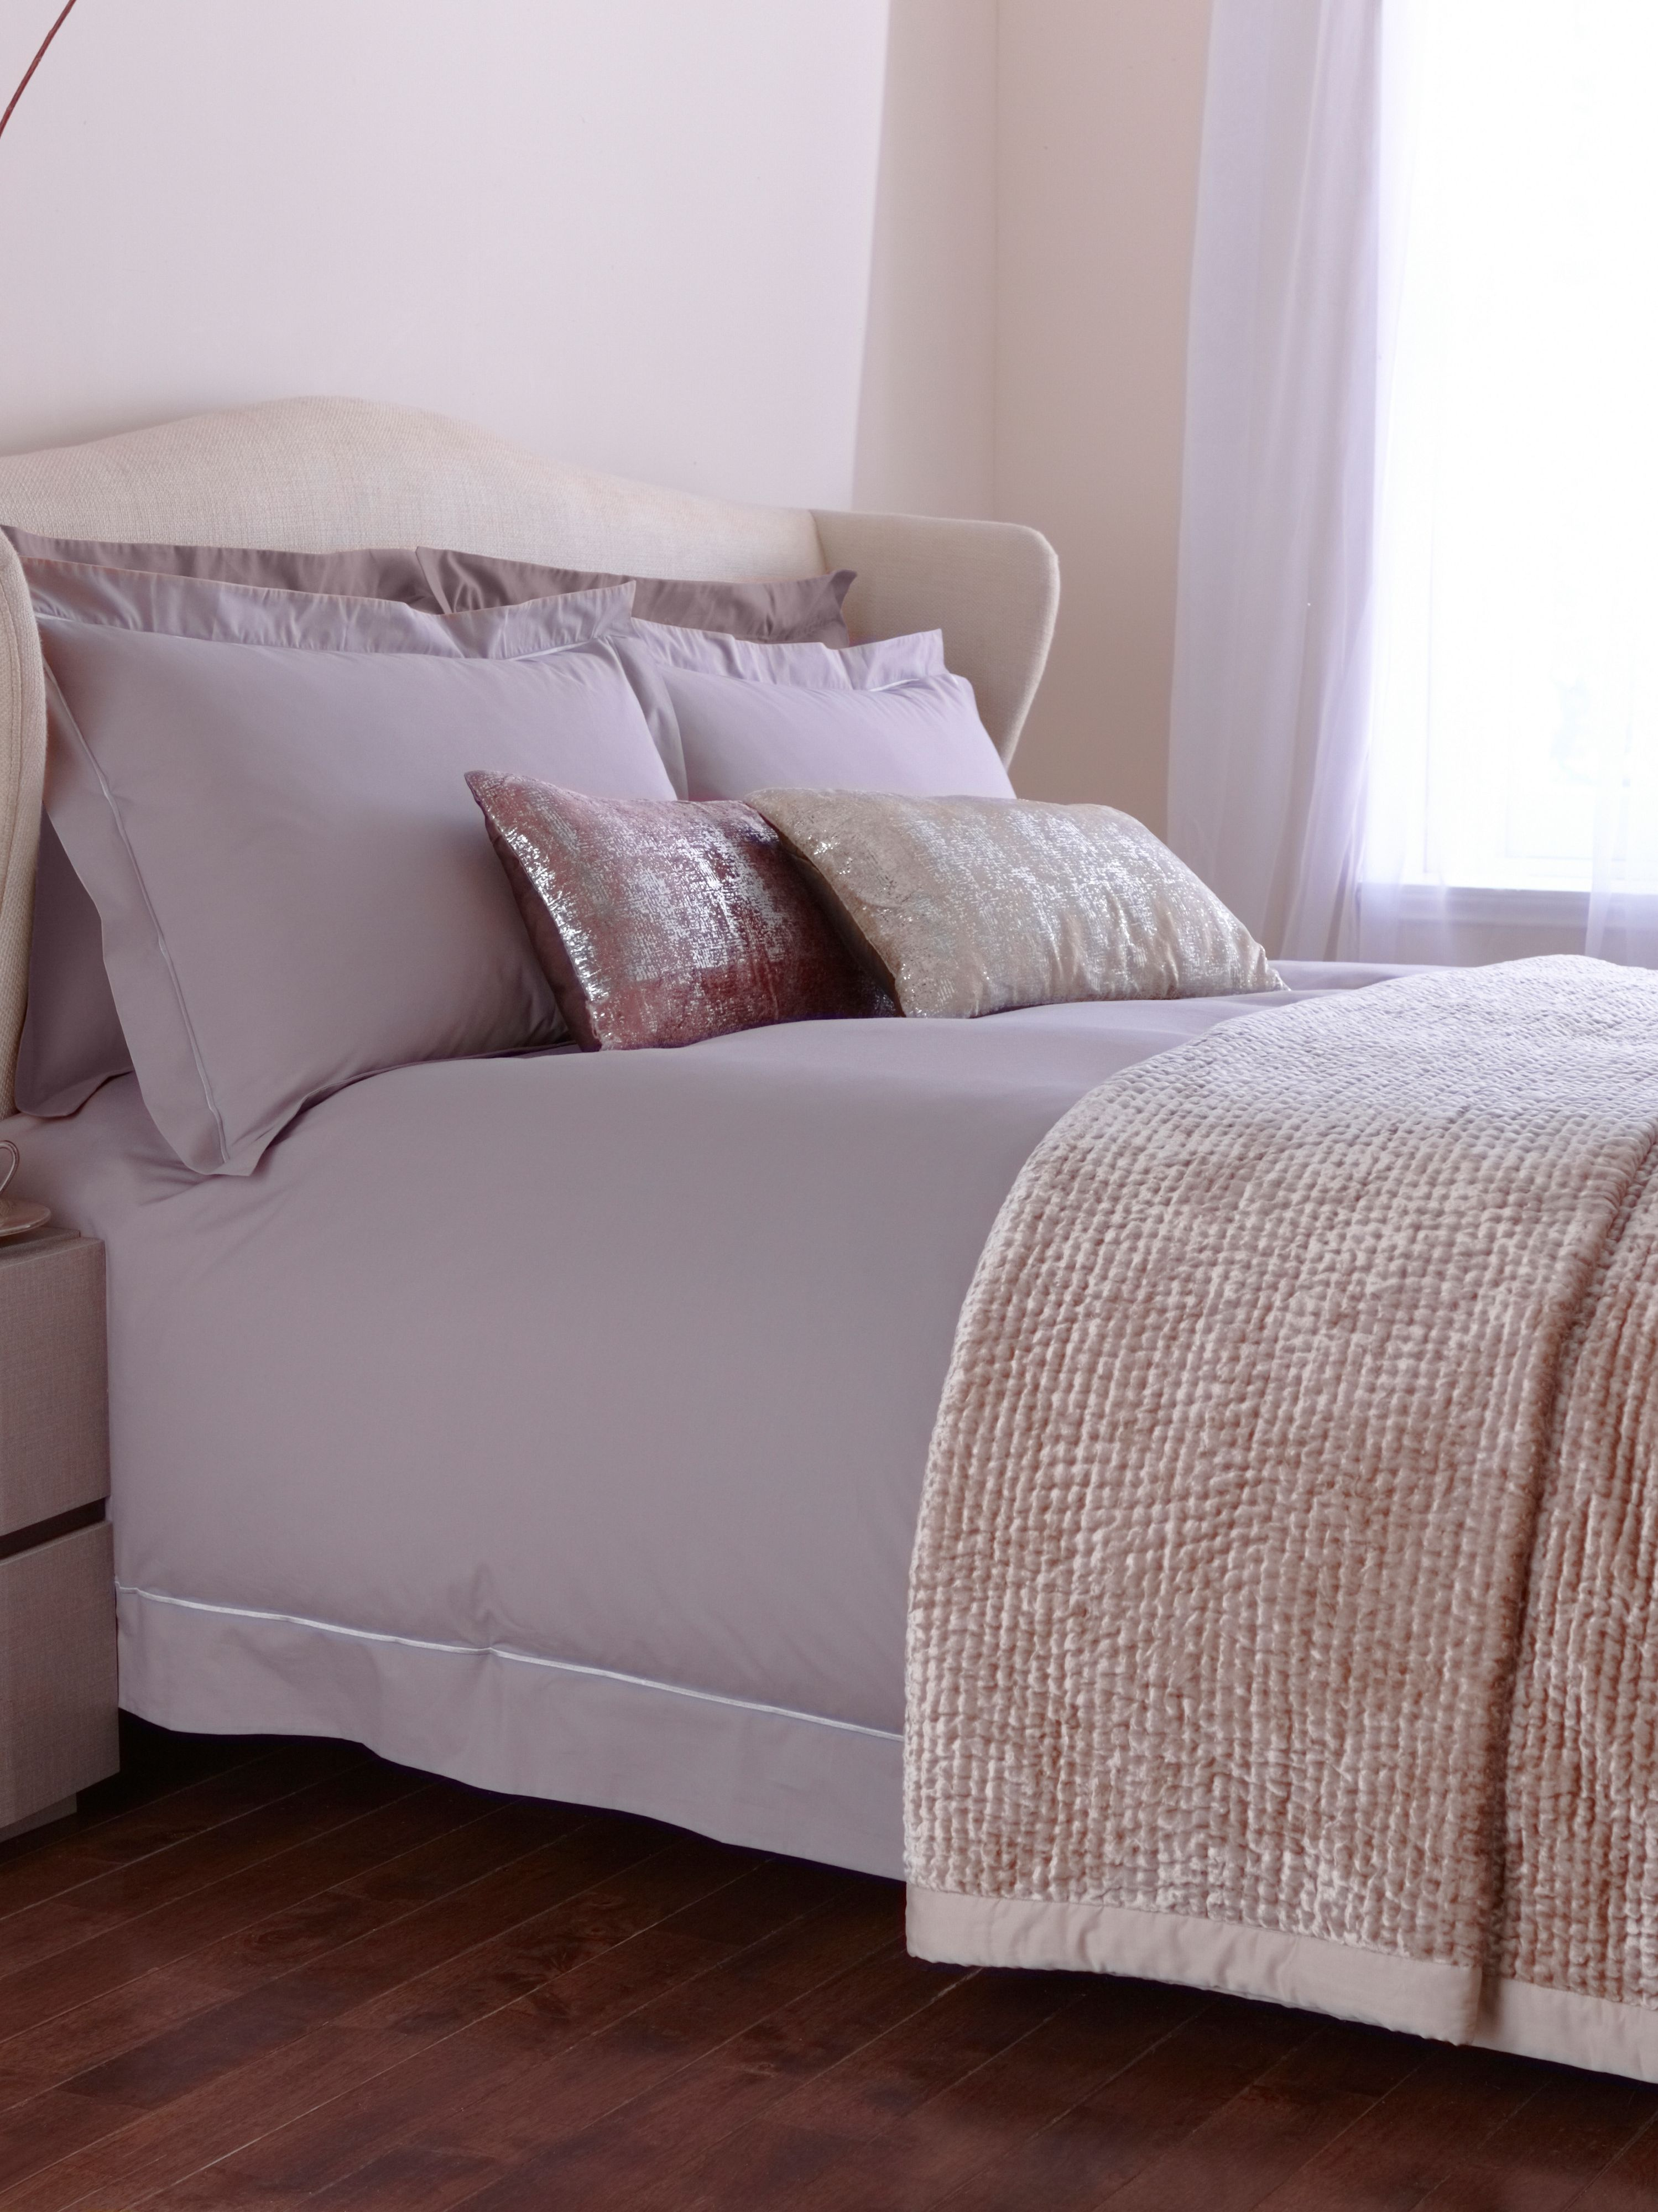 Mason bed linen in grey